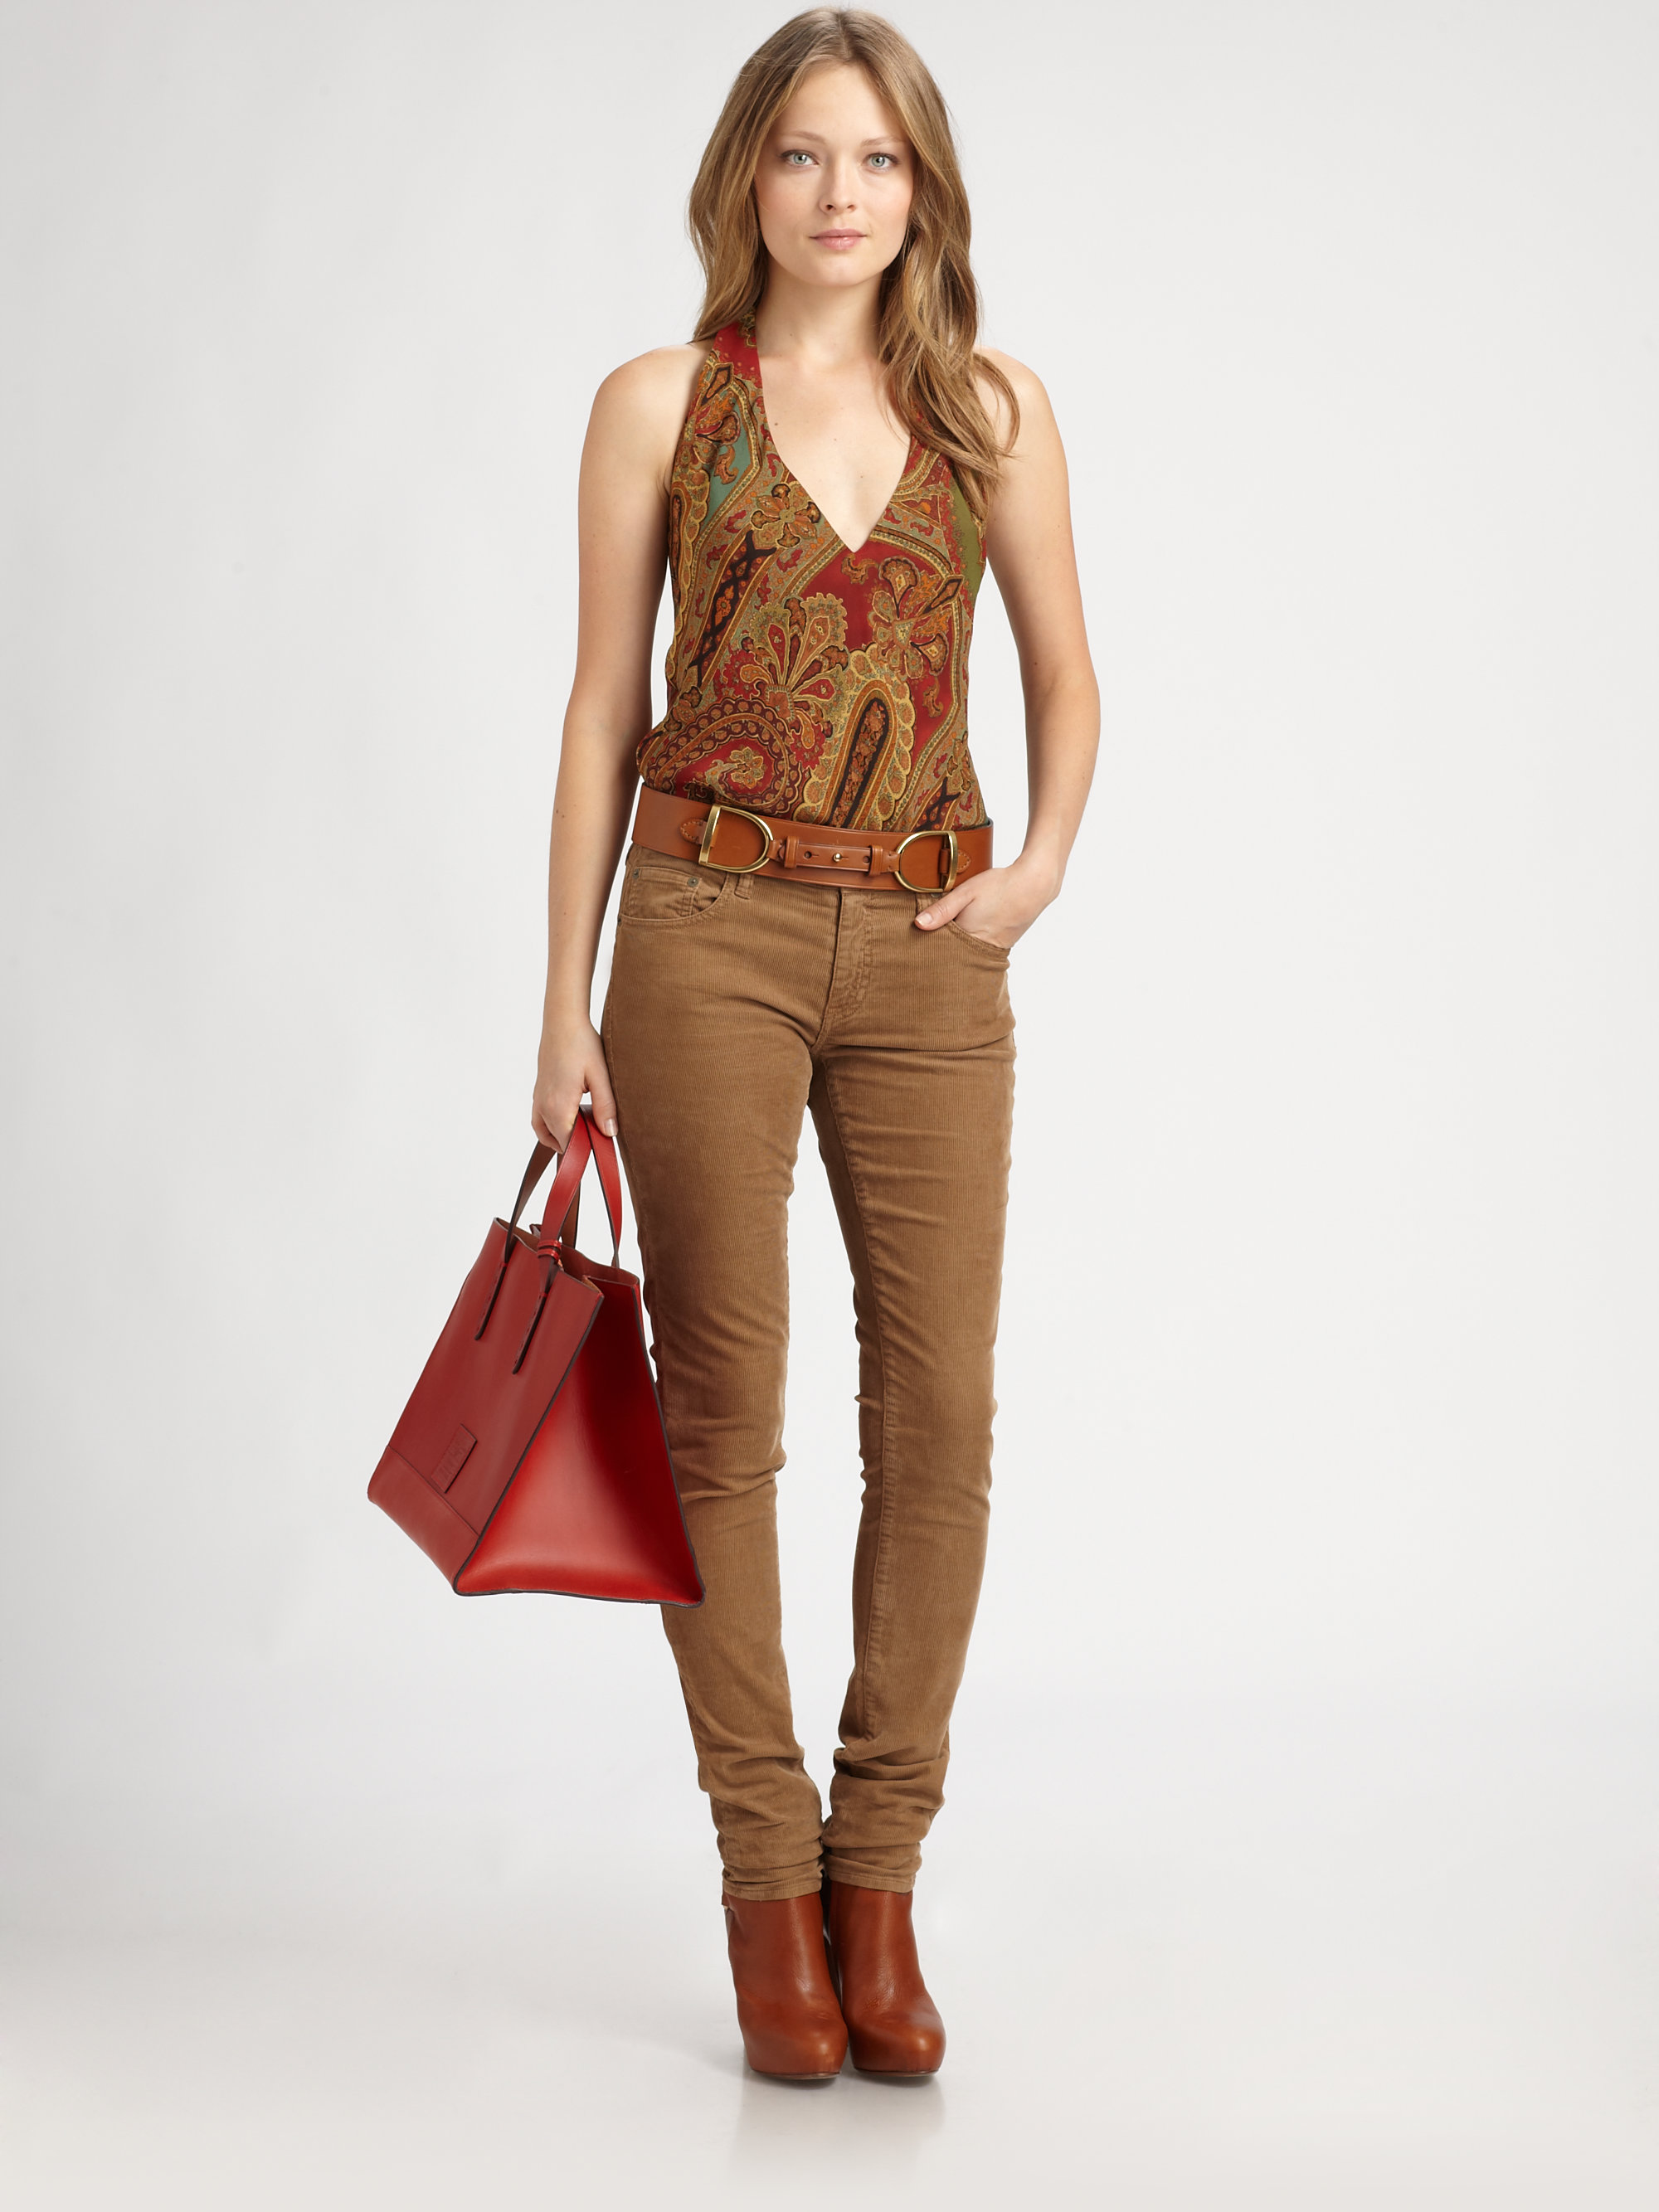 Ralph lauren blue label Skinny Corduroy Pants in Brown | Lyst